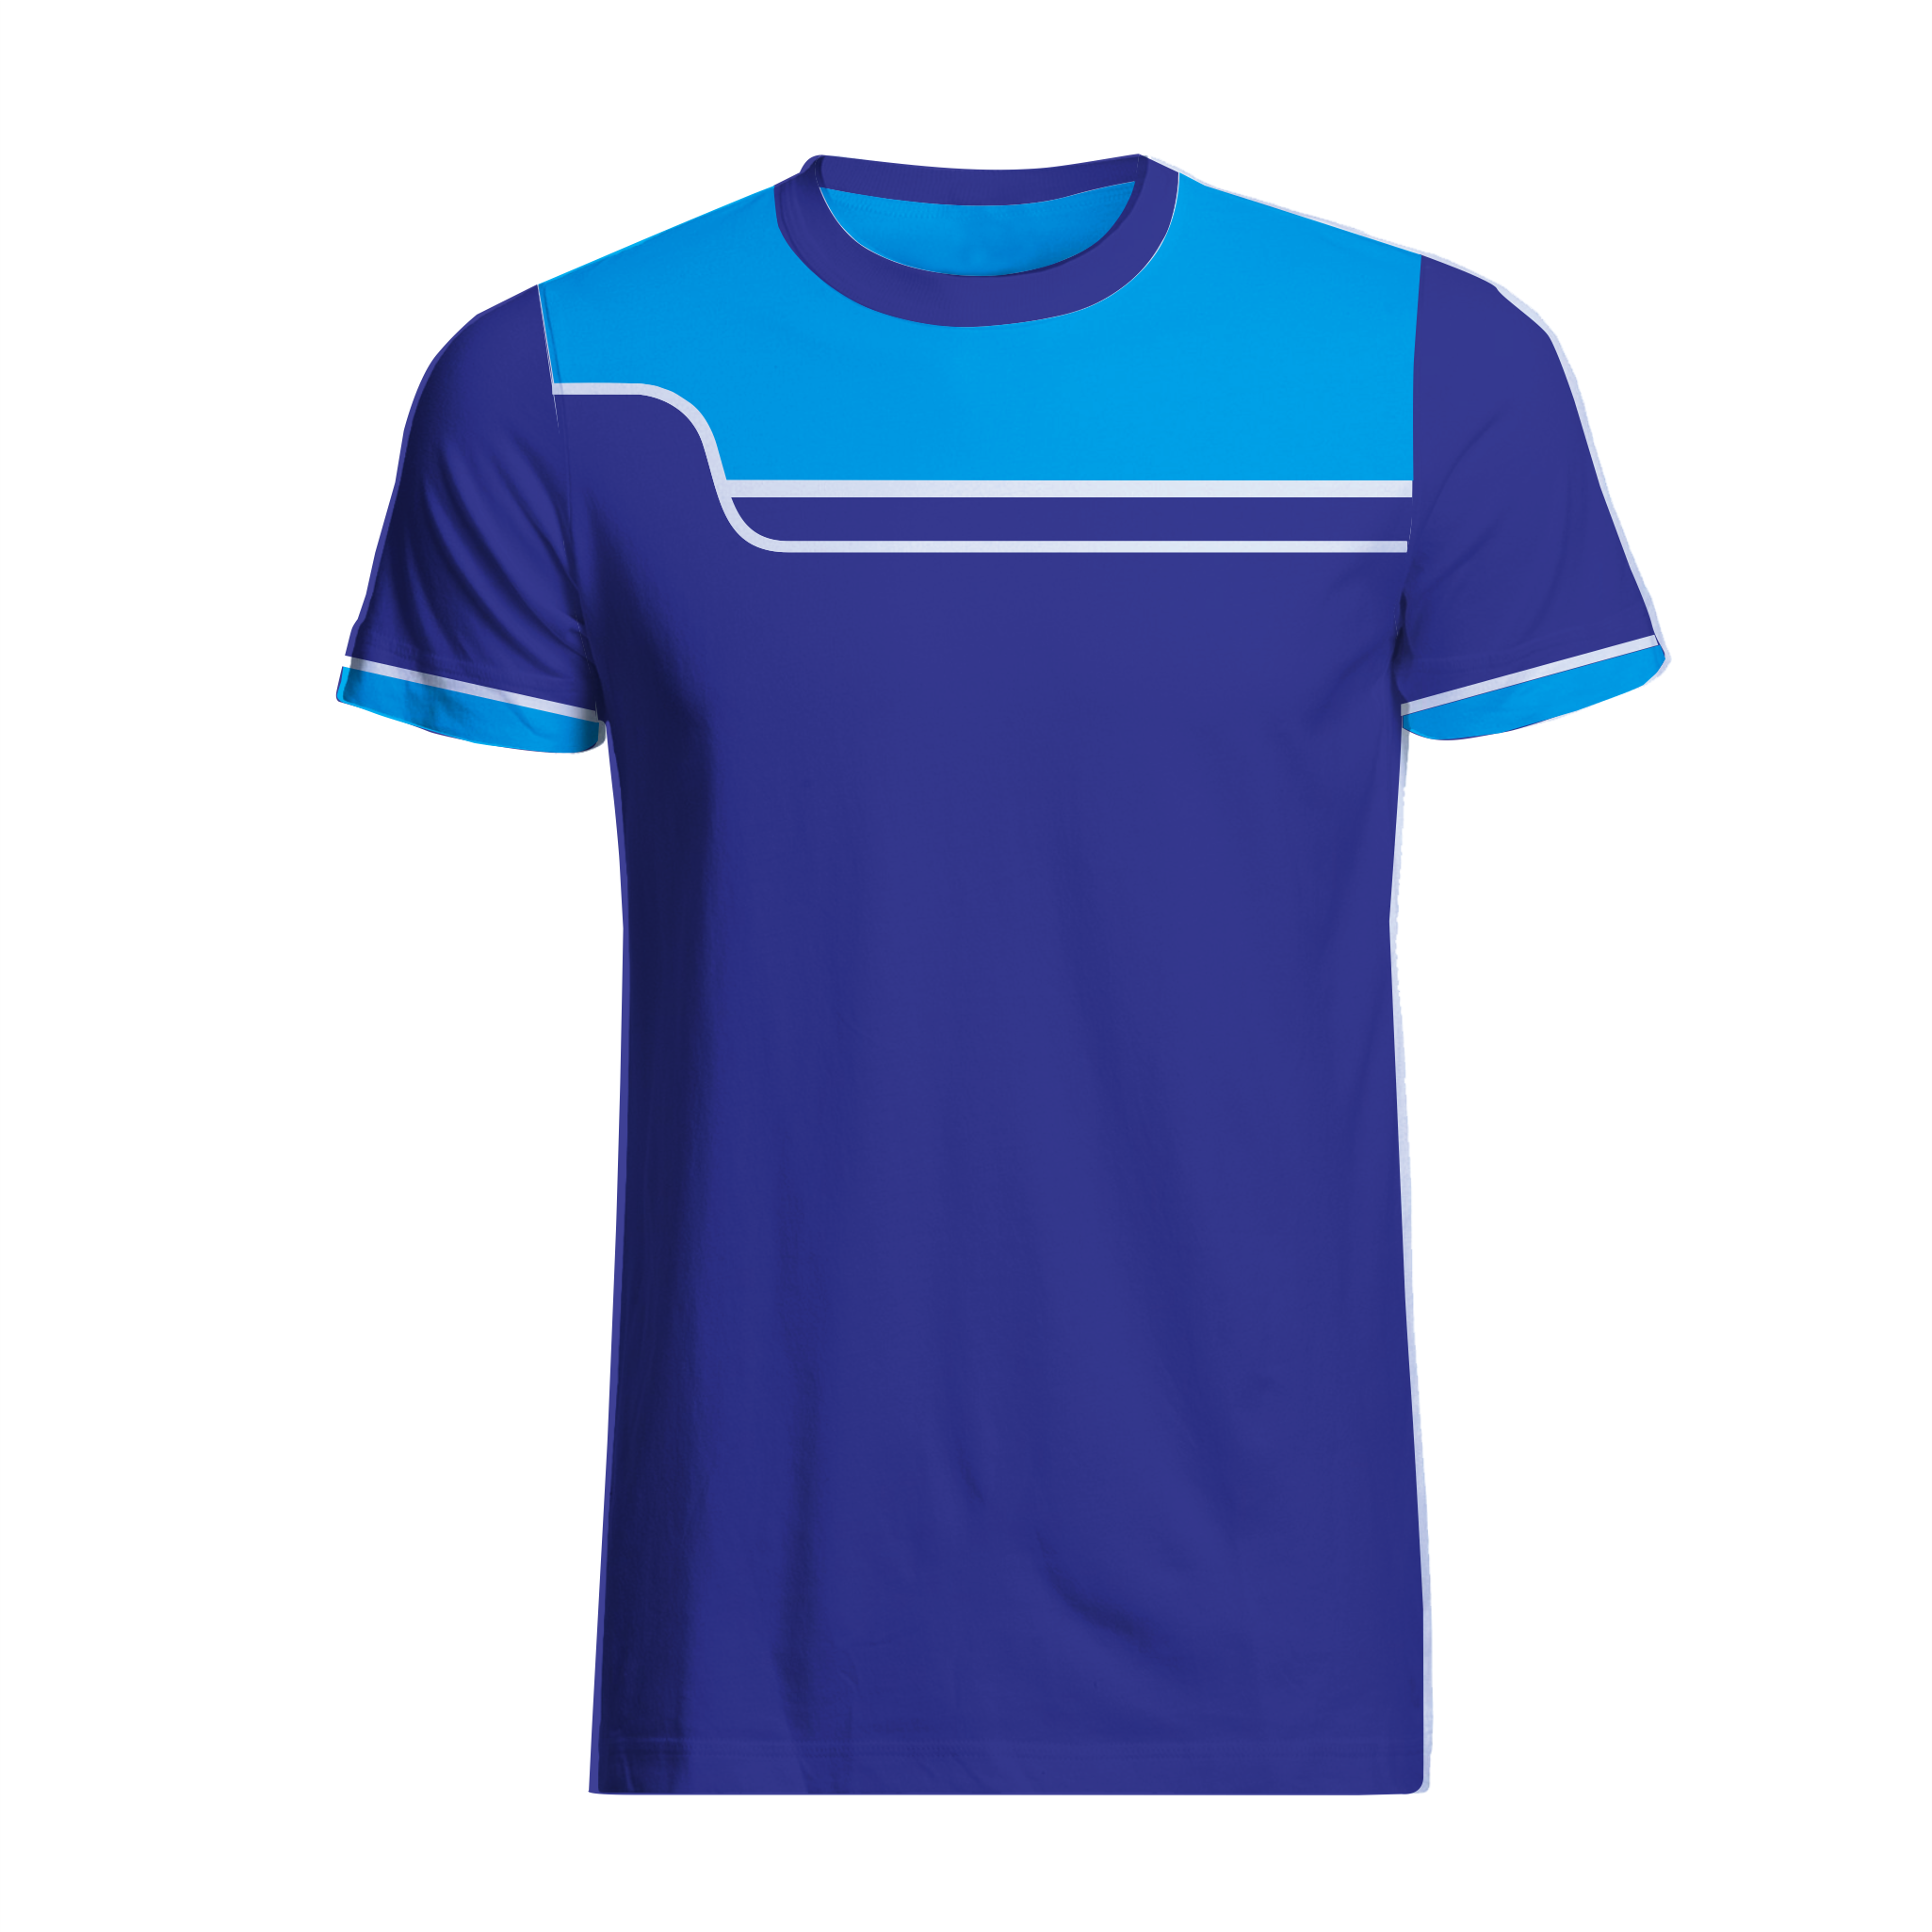 Panelled - Zuco football Shirt - Repo